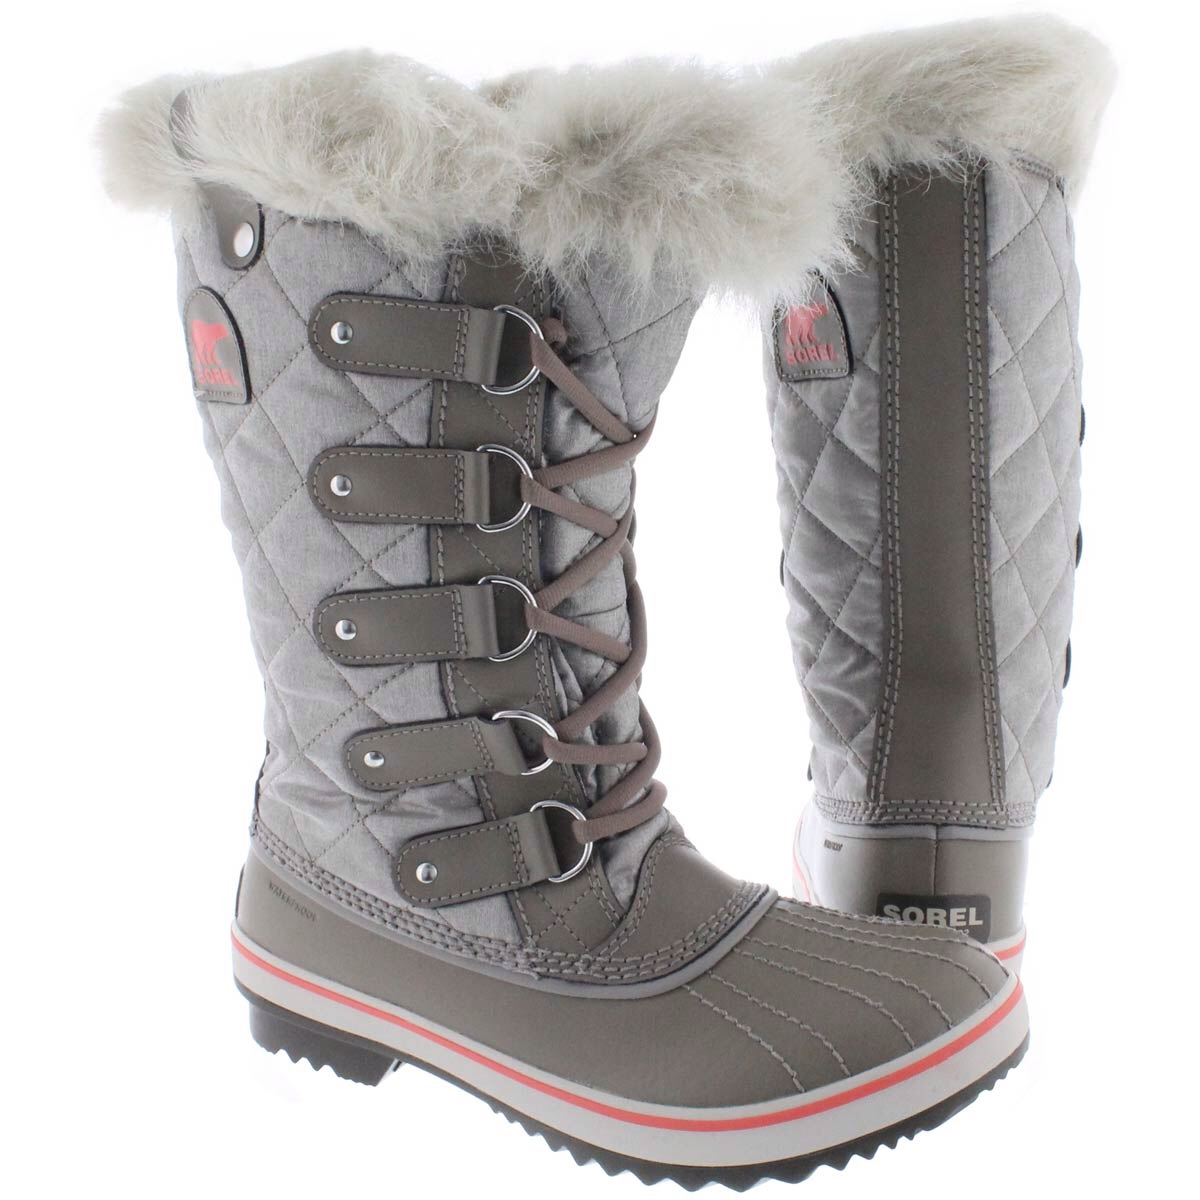 My Favourite Stylish Winter Boots for Winter | BlogHer